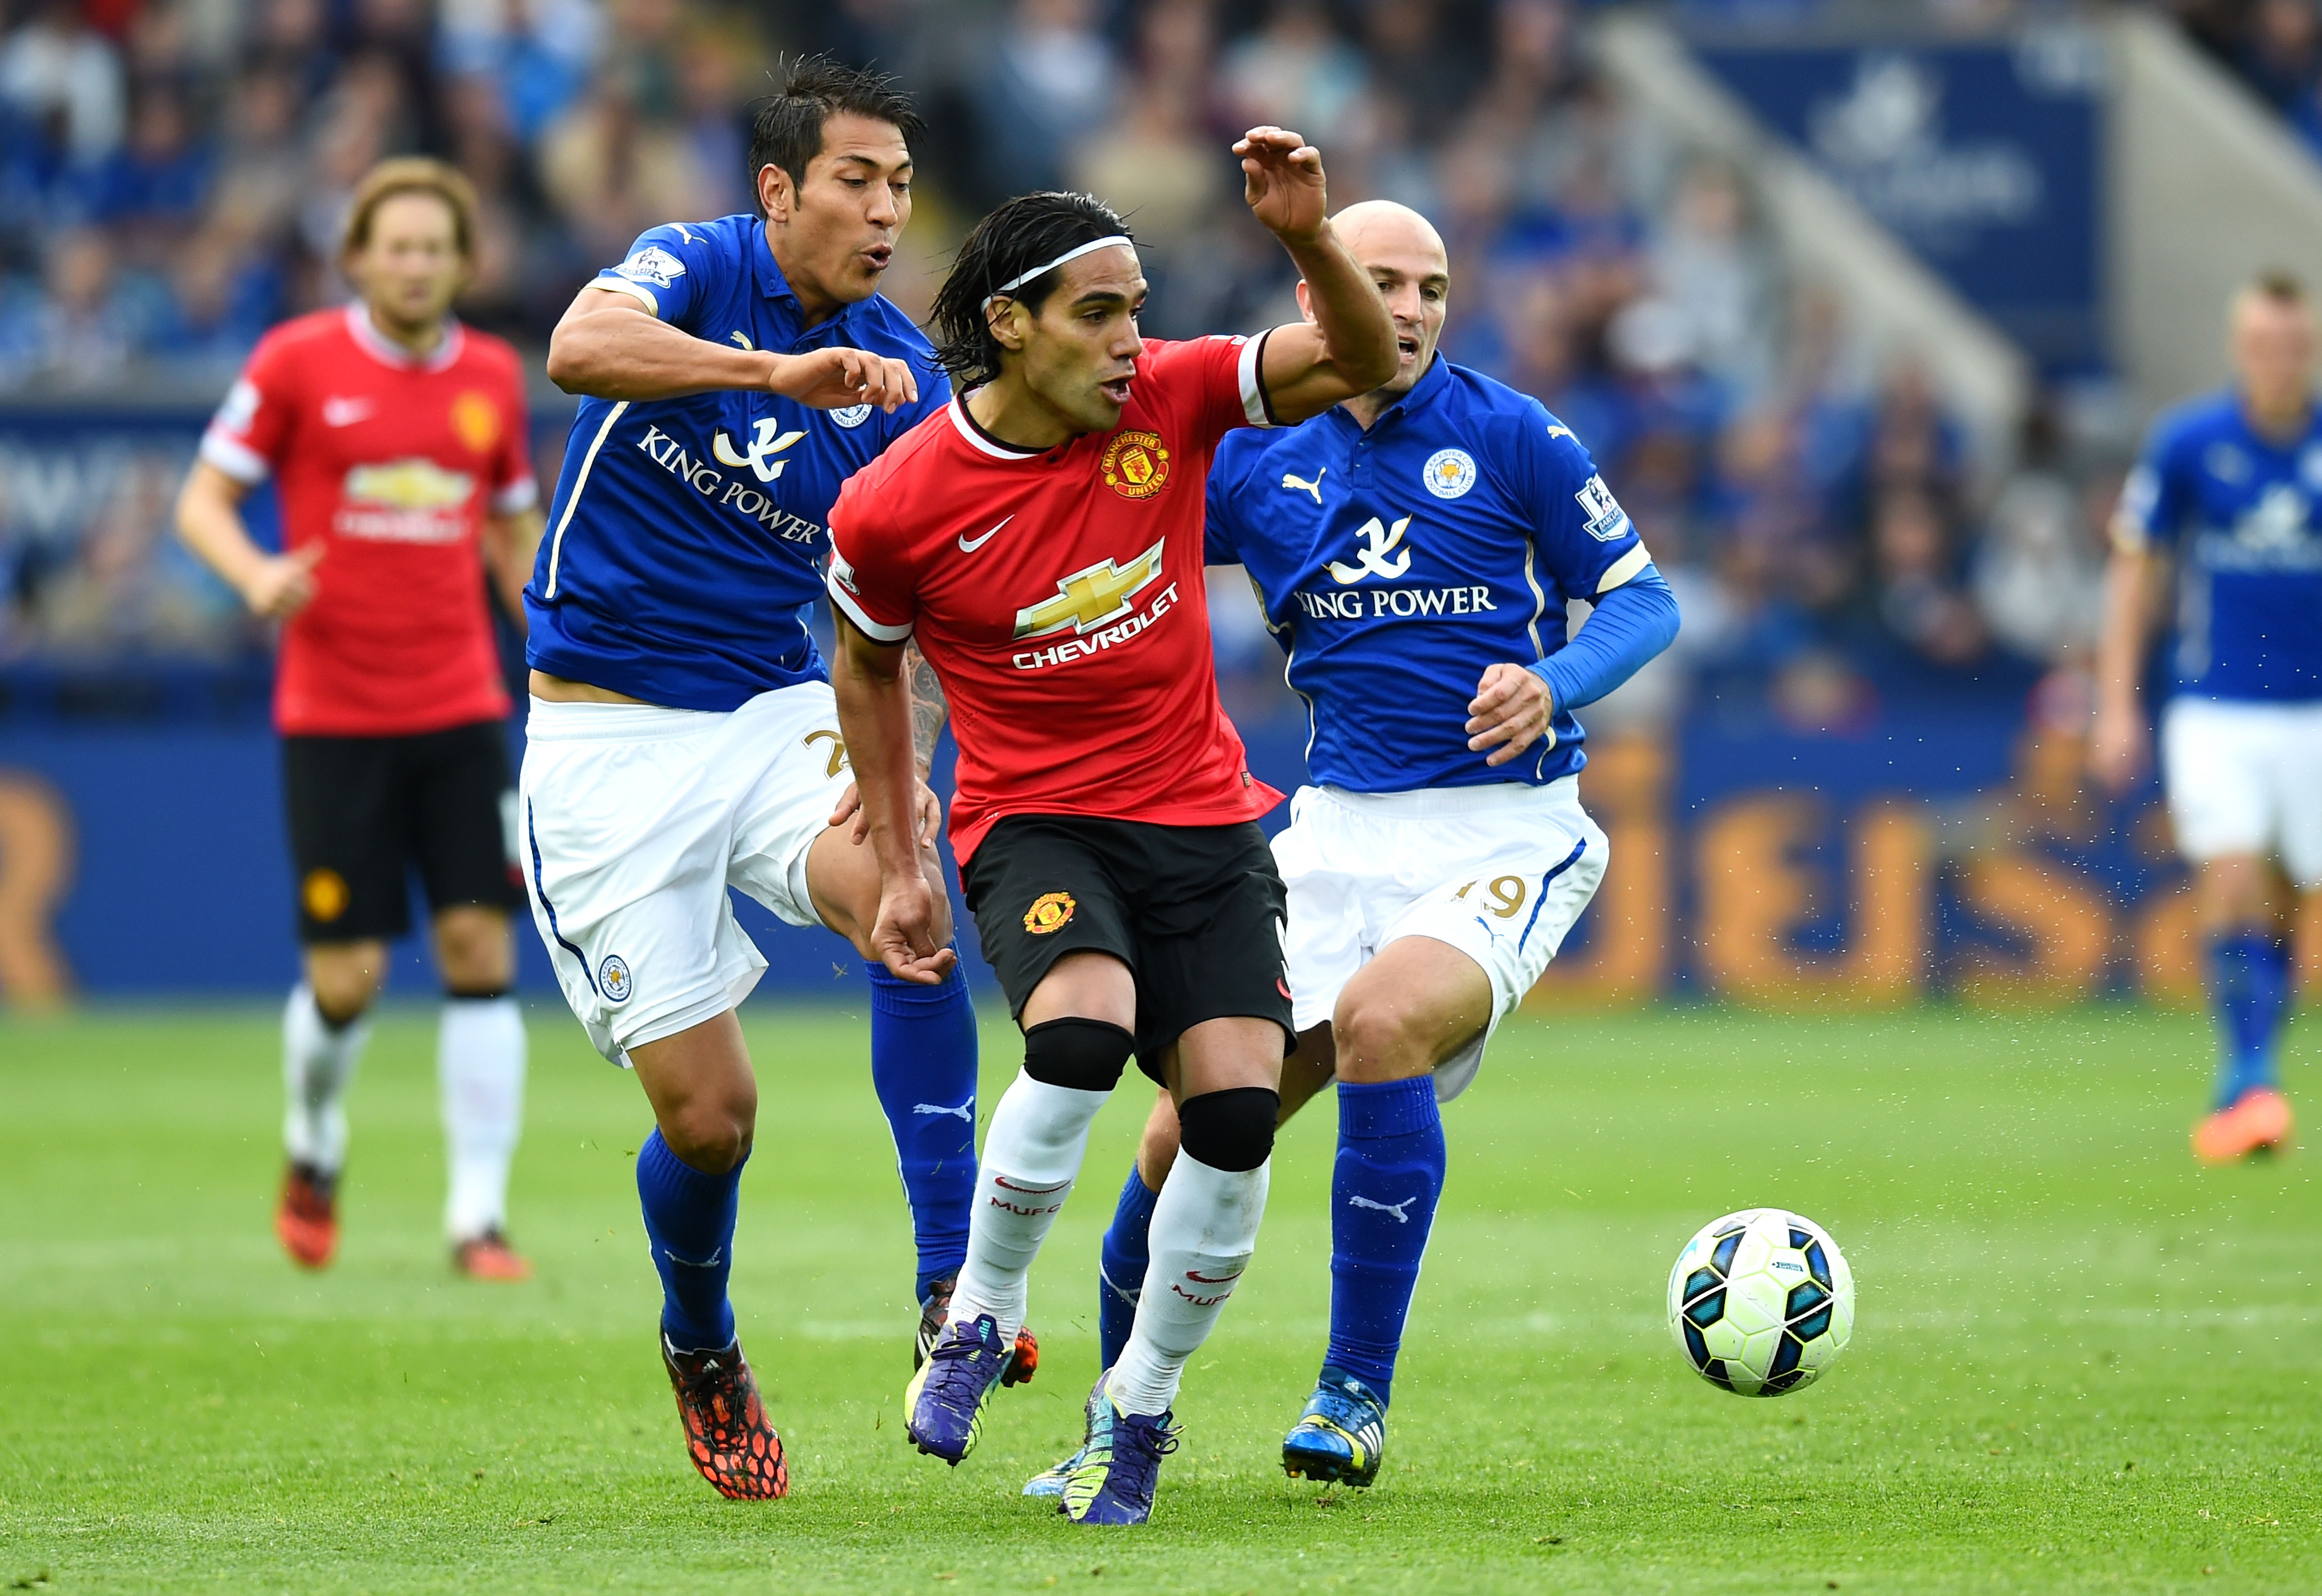 Manchester United vs. Leicester City live stream: Time, TV schedule and how to watch the EPL online